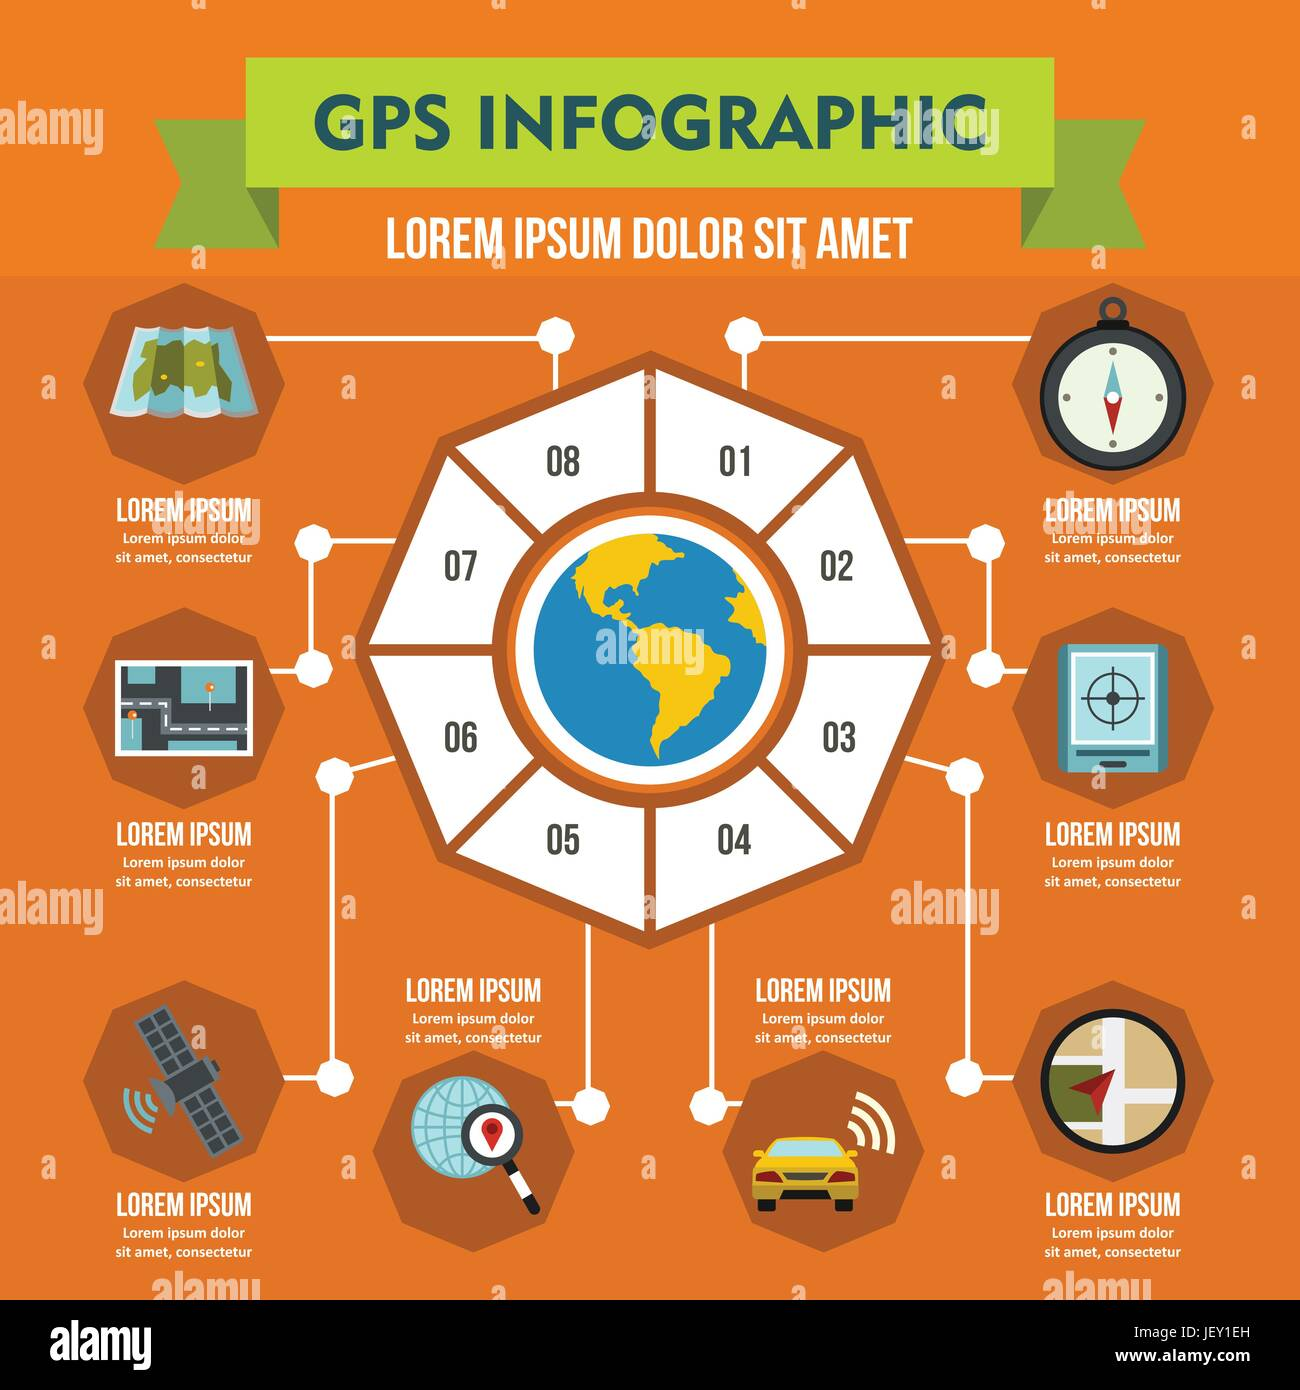 GPS navigation infographic concept, flat style - Stock Image